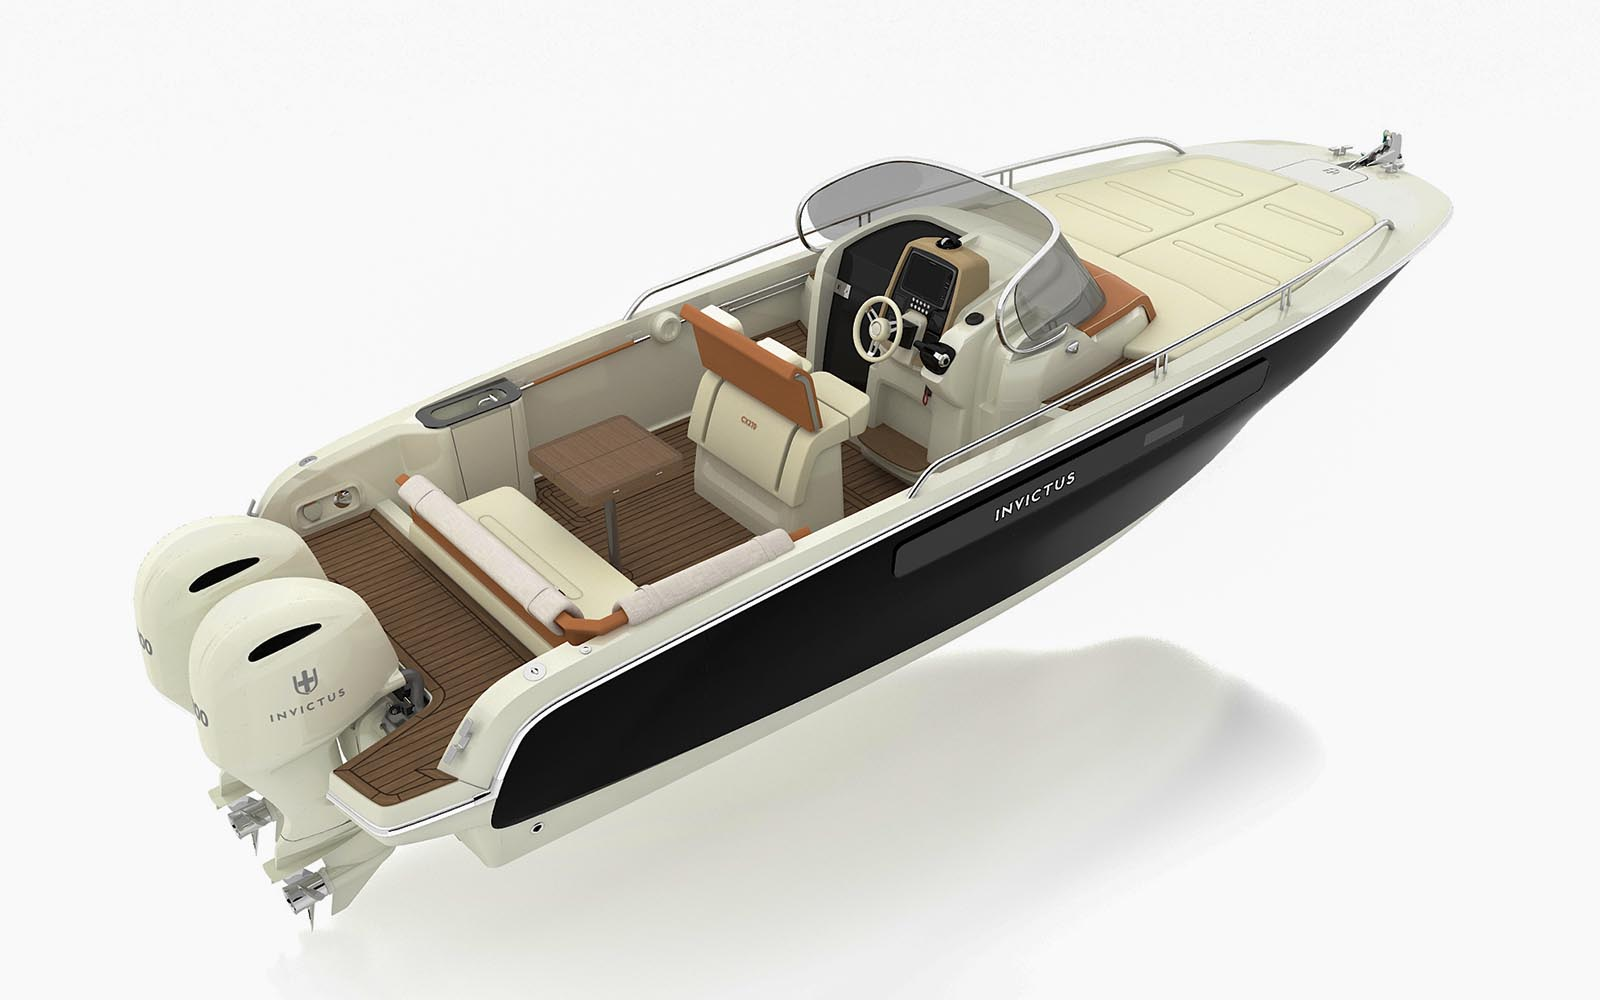 invictus yachts cx270 cannes yachting festival - boat shopping 1